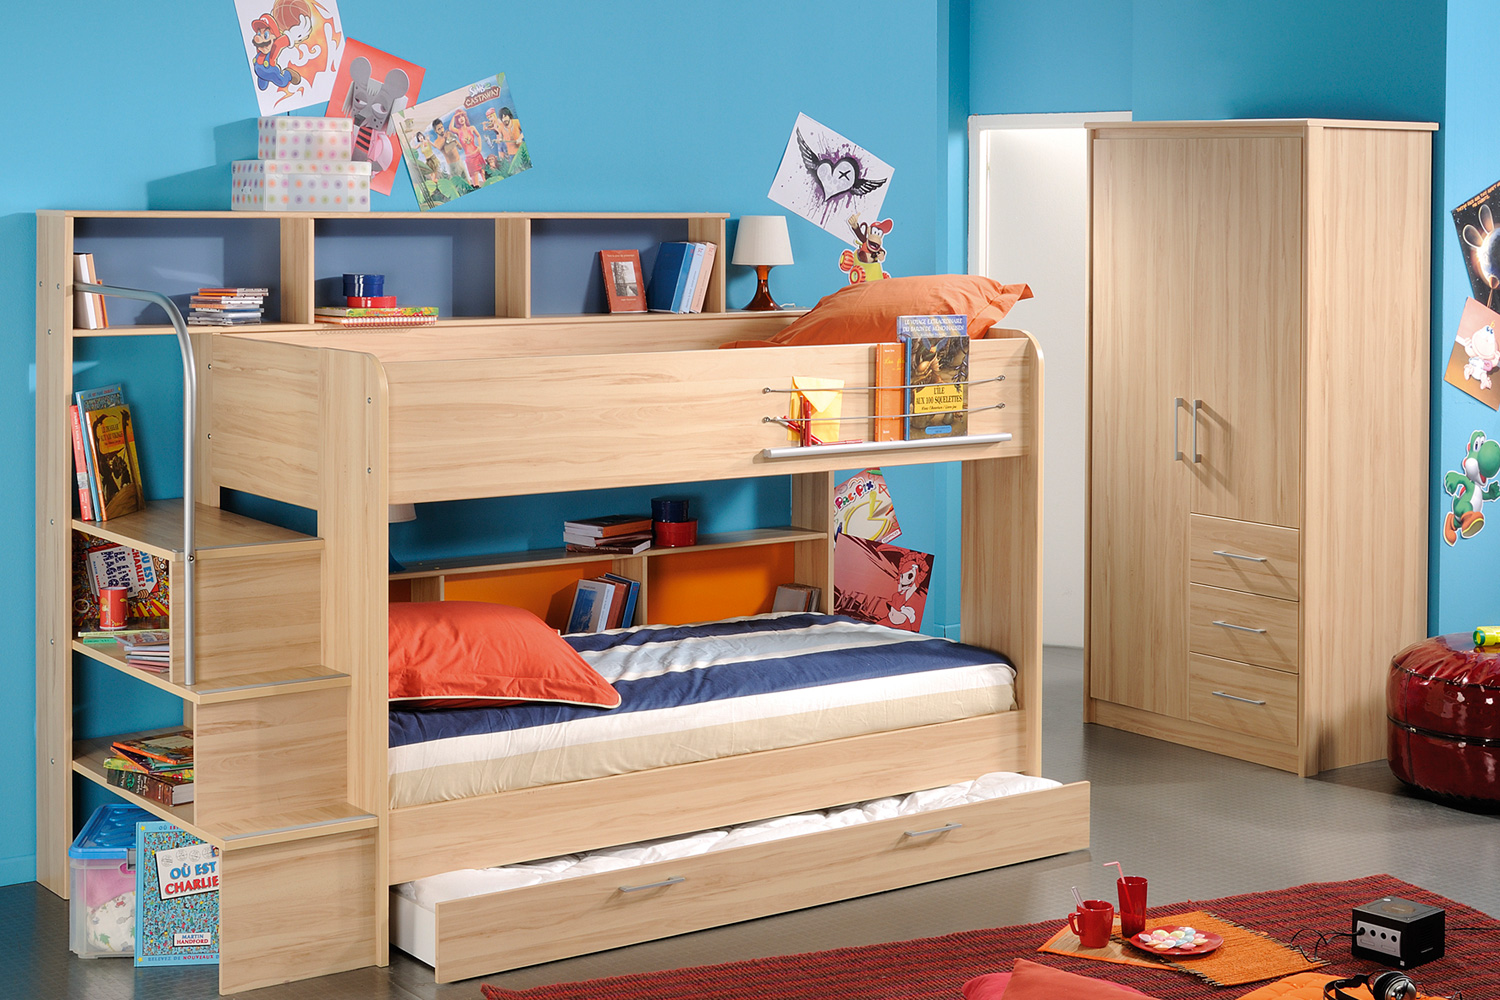 Boy Bedroom Storage: Lively Colorful Boys Room Space Saving Bunk Bed Designs